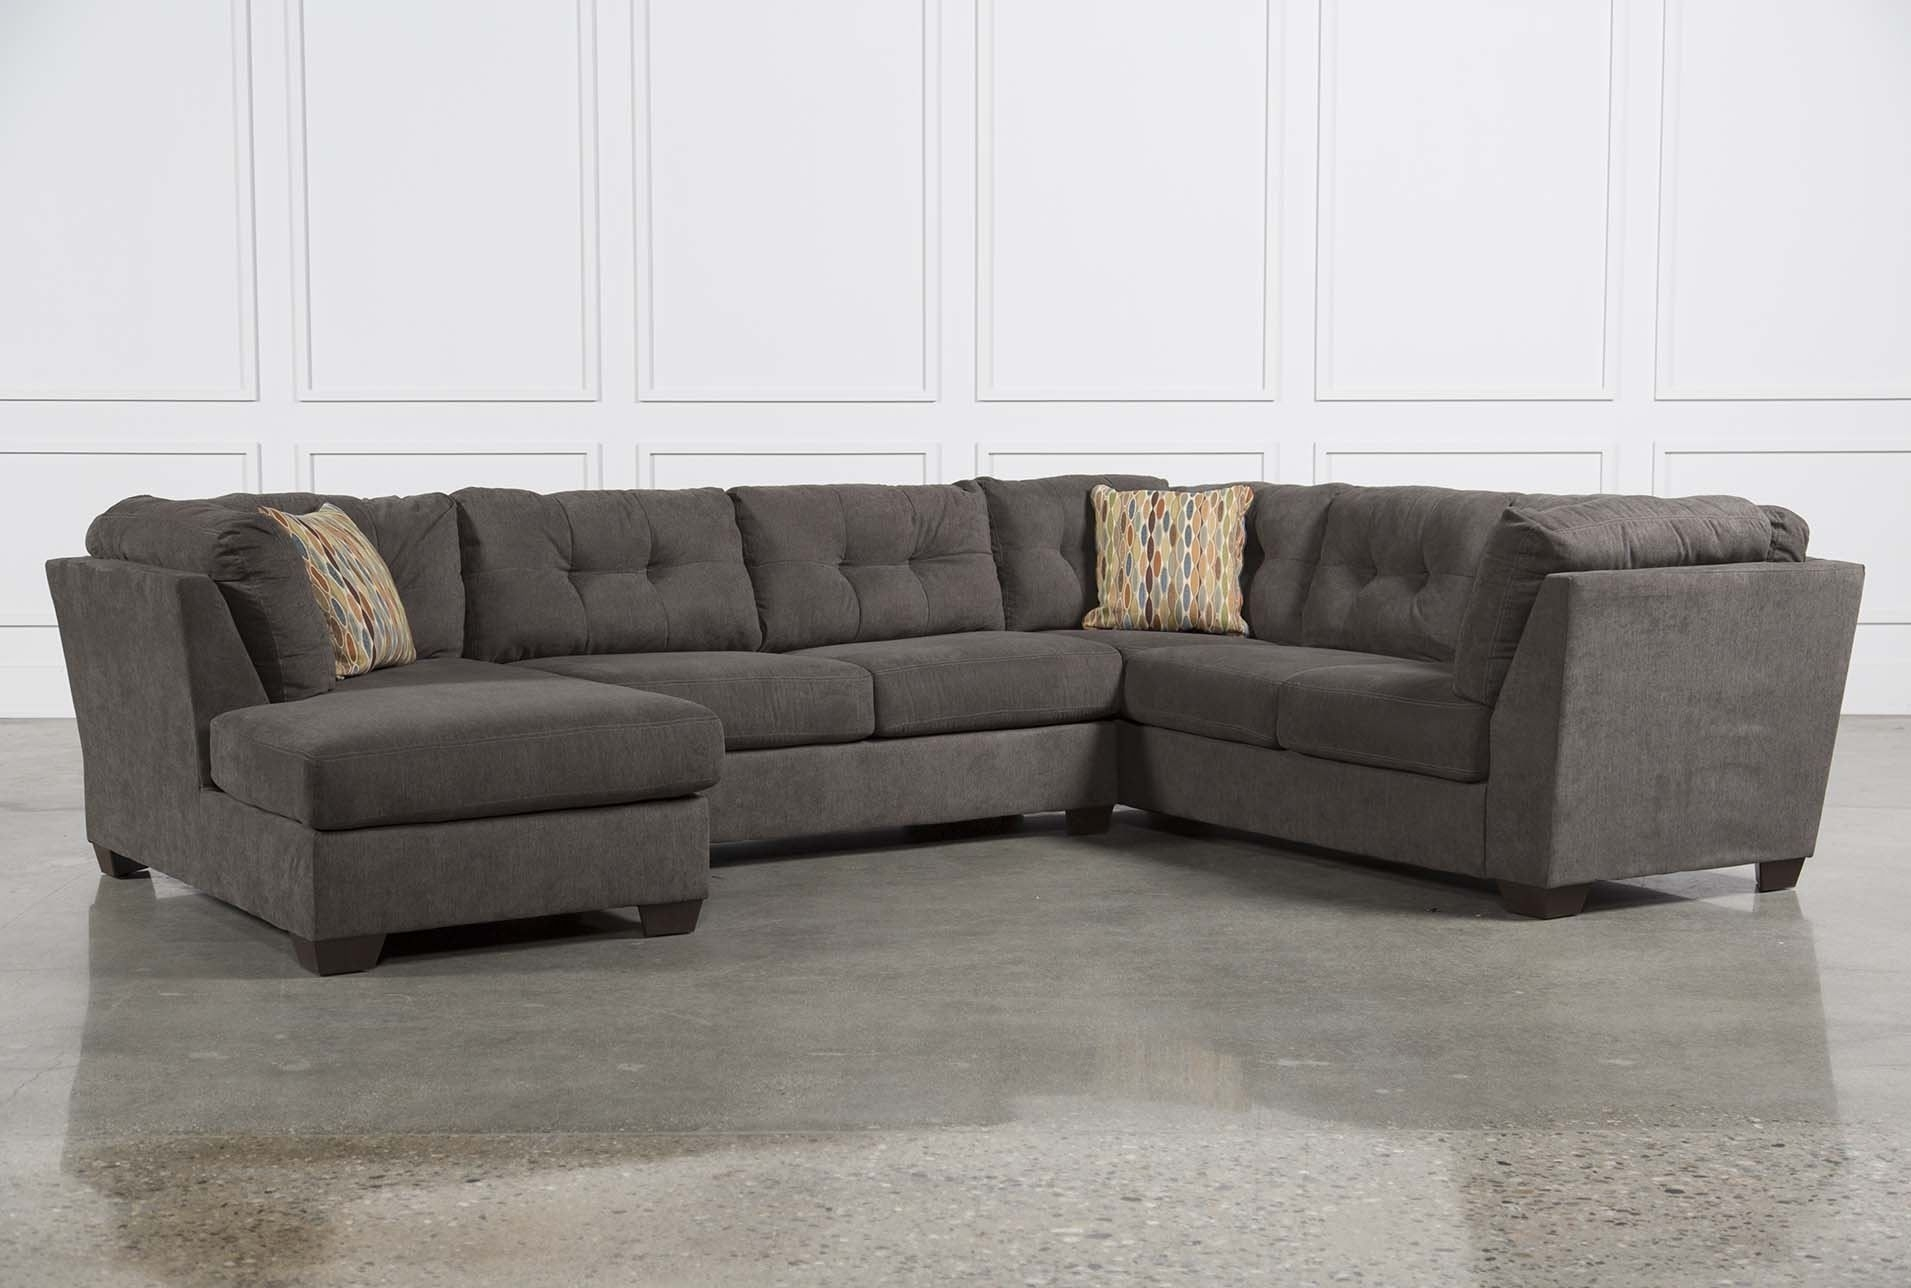 Delta City Steel 3 Piece Sectional W/sleeper | Furniture | Pinterest Within Norfolk Chocolate 3 Piece Sectionals With Raf Chaise (Image 11 of 25)